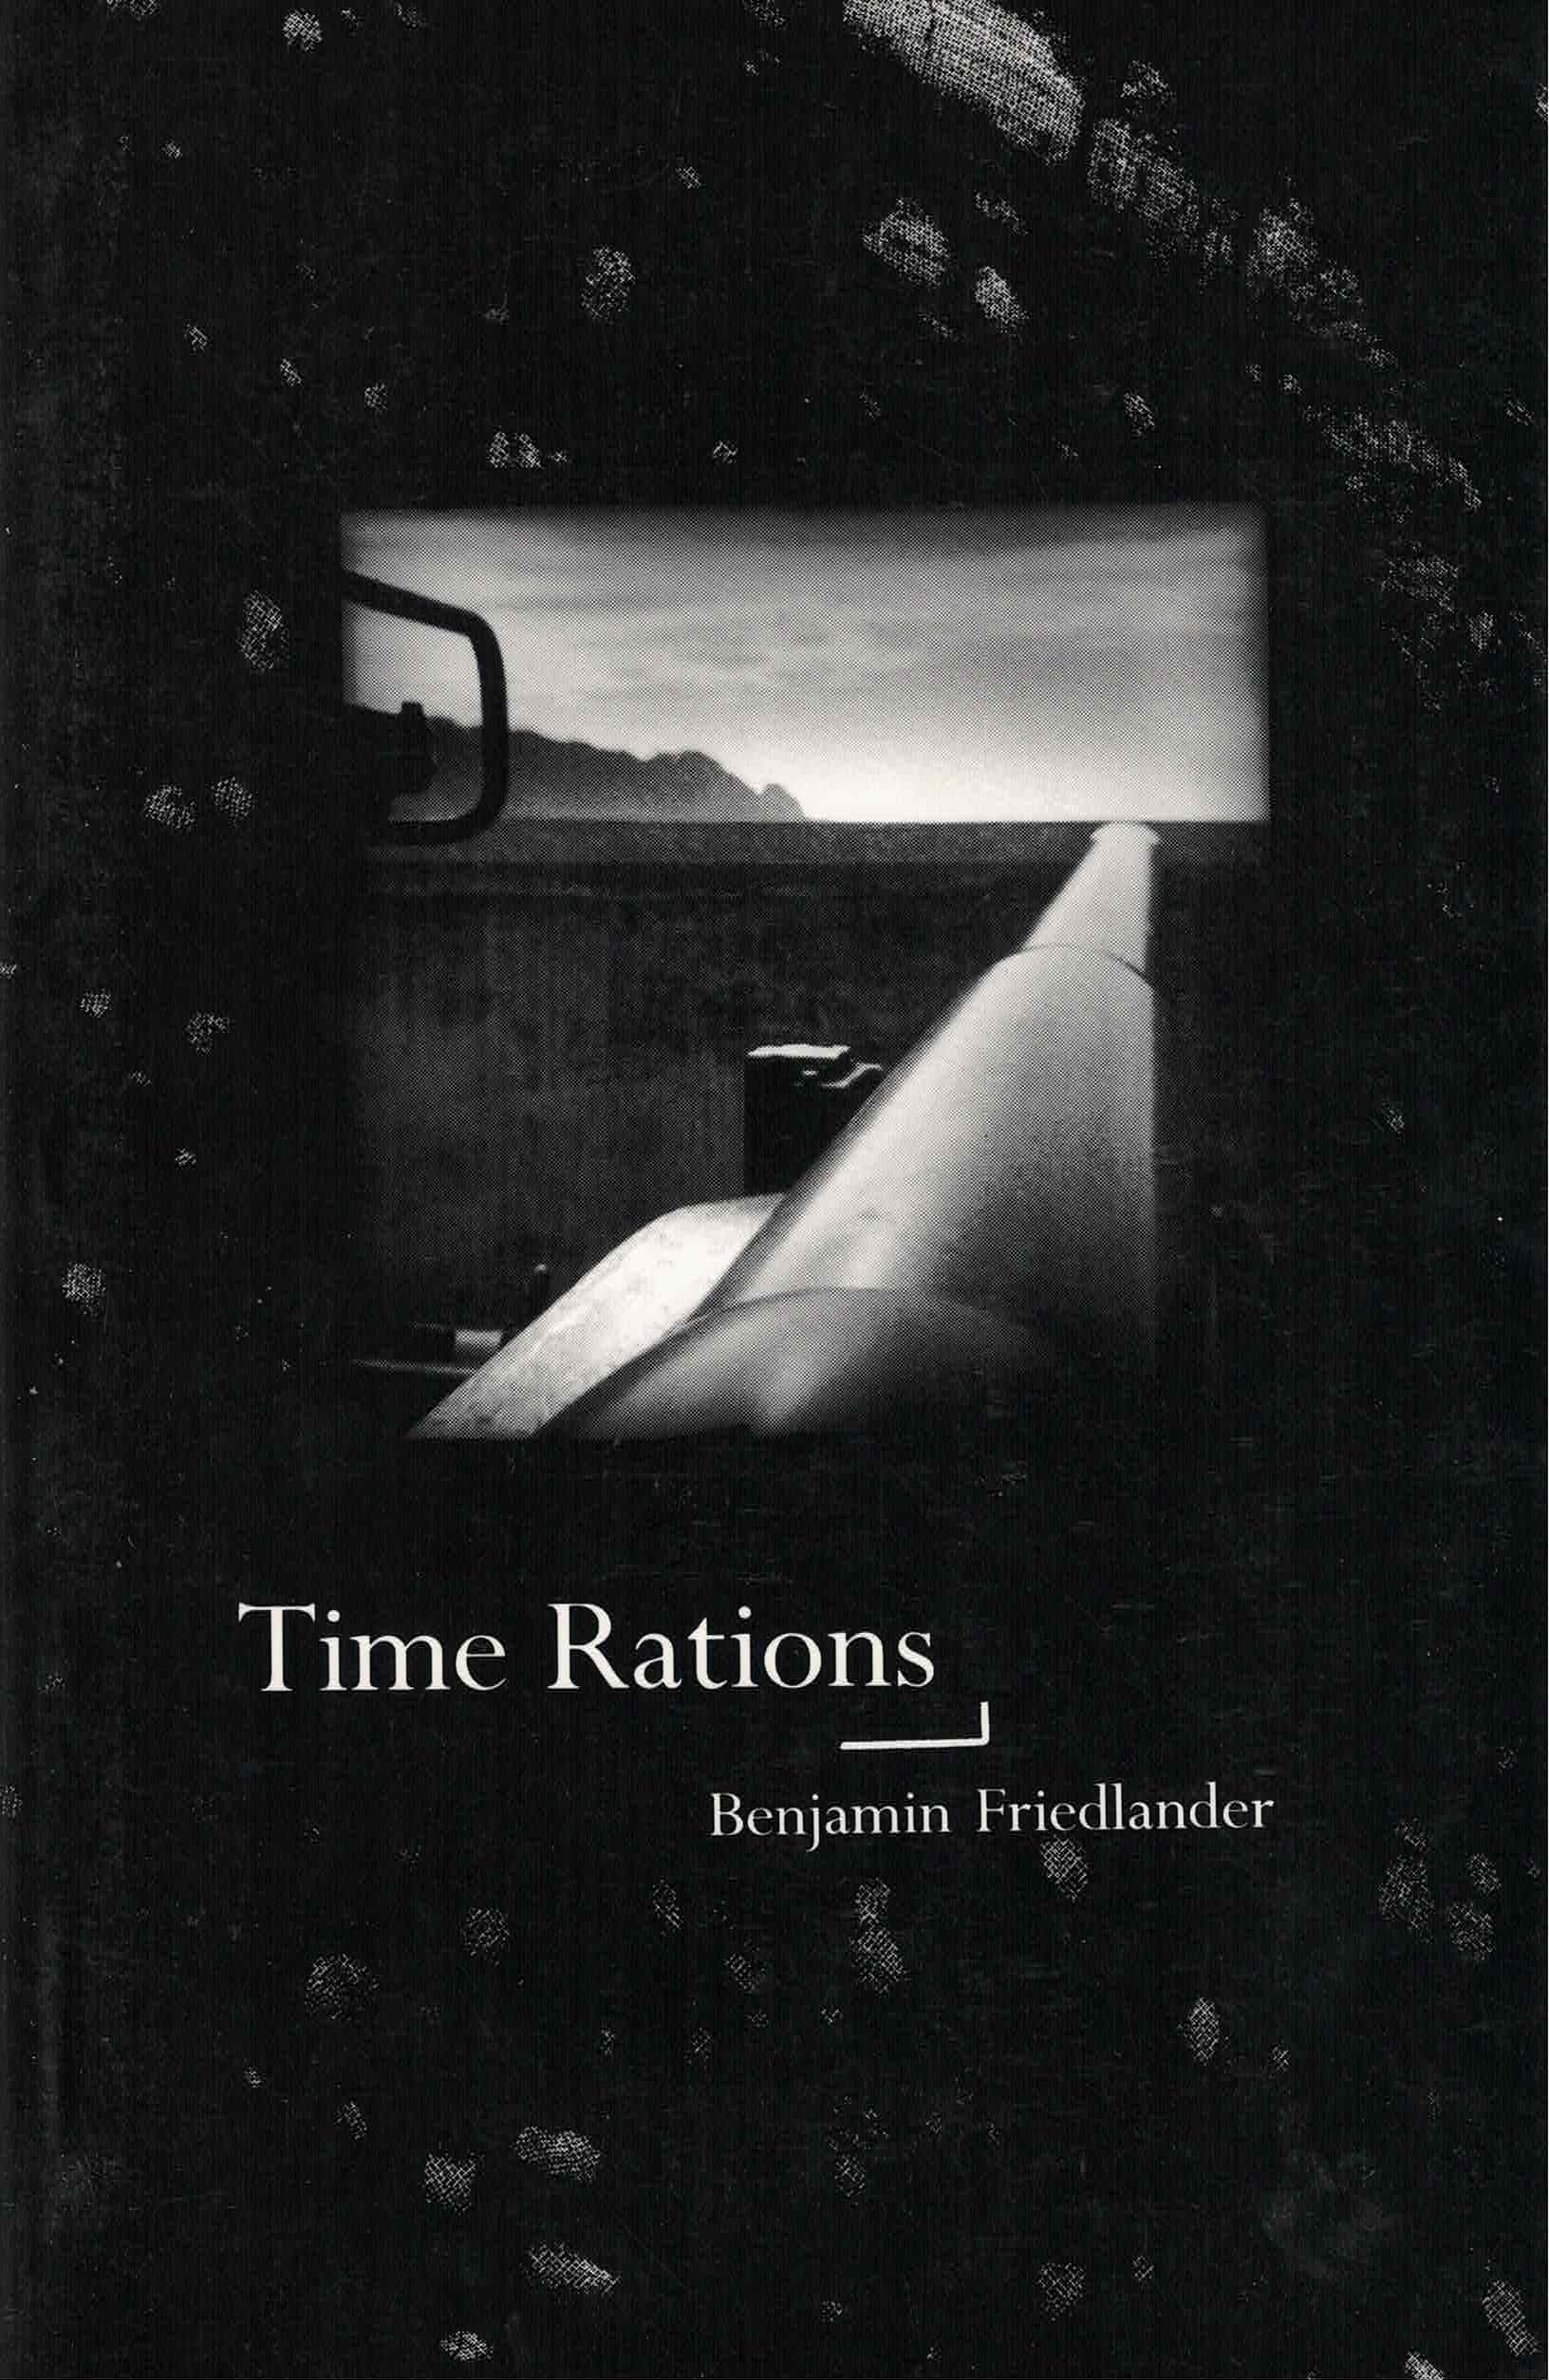 cover of Time Rotations by Benjamin Friedlander, black and white photo of a horizon line with long metal cylinder in the foreground